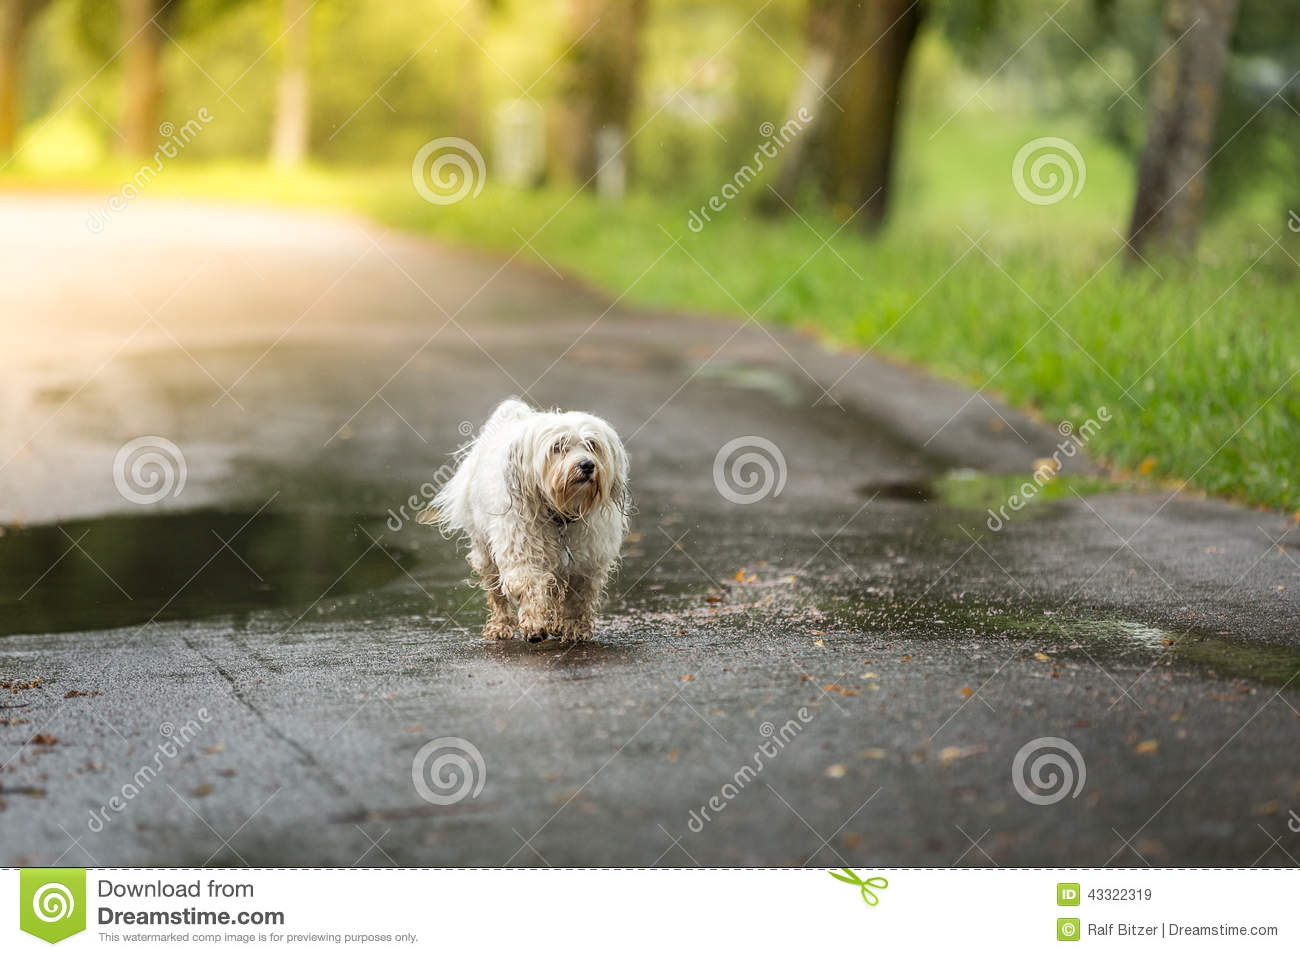 Small white dog walks in bad weather on the road.